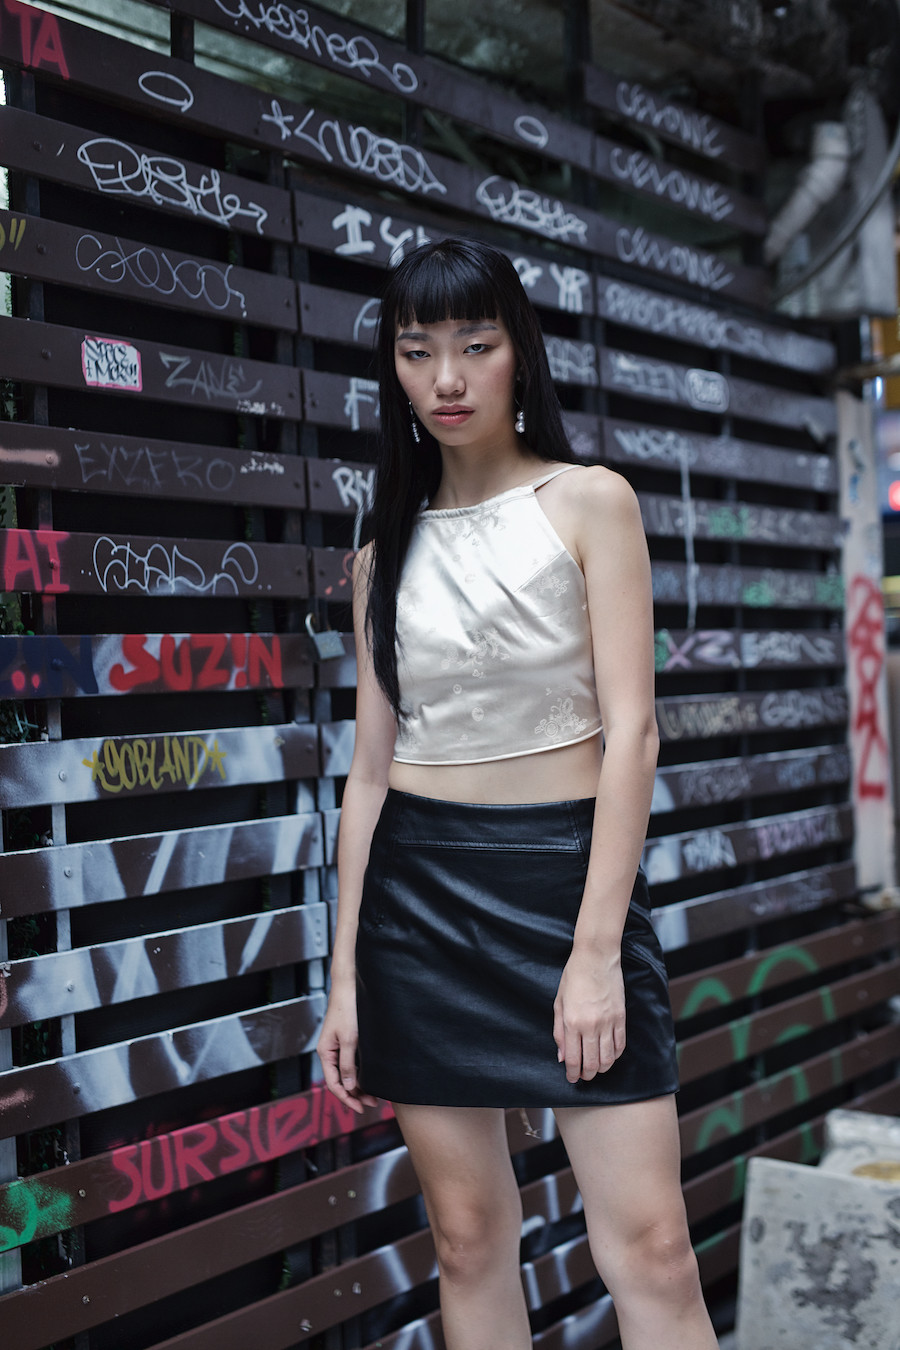 Fah - Street Fashion & Youth Culture in Bangkok, Thailand